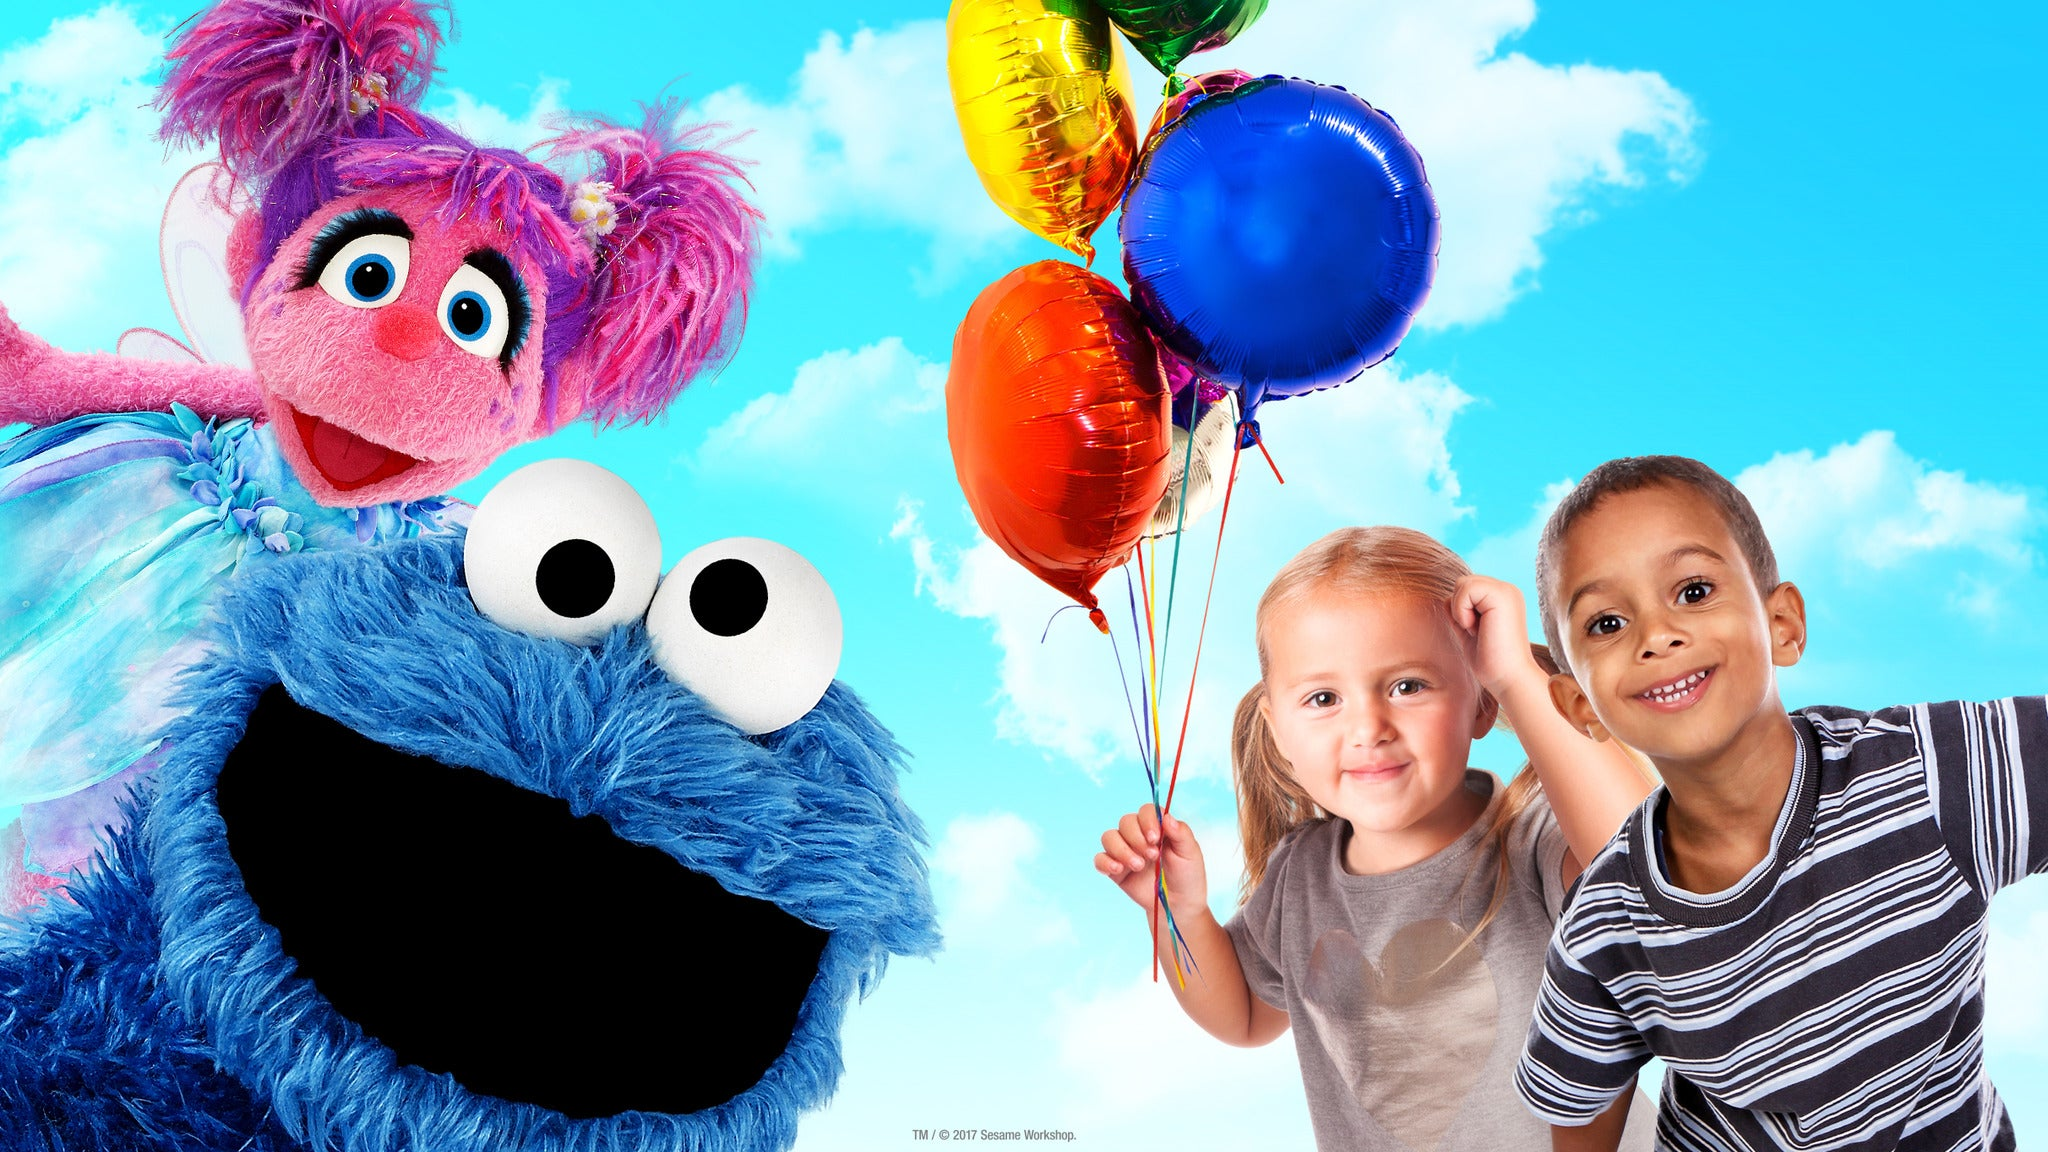 Sesame Street Live! Let's Party! at U.S. Cellular Center